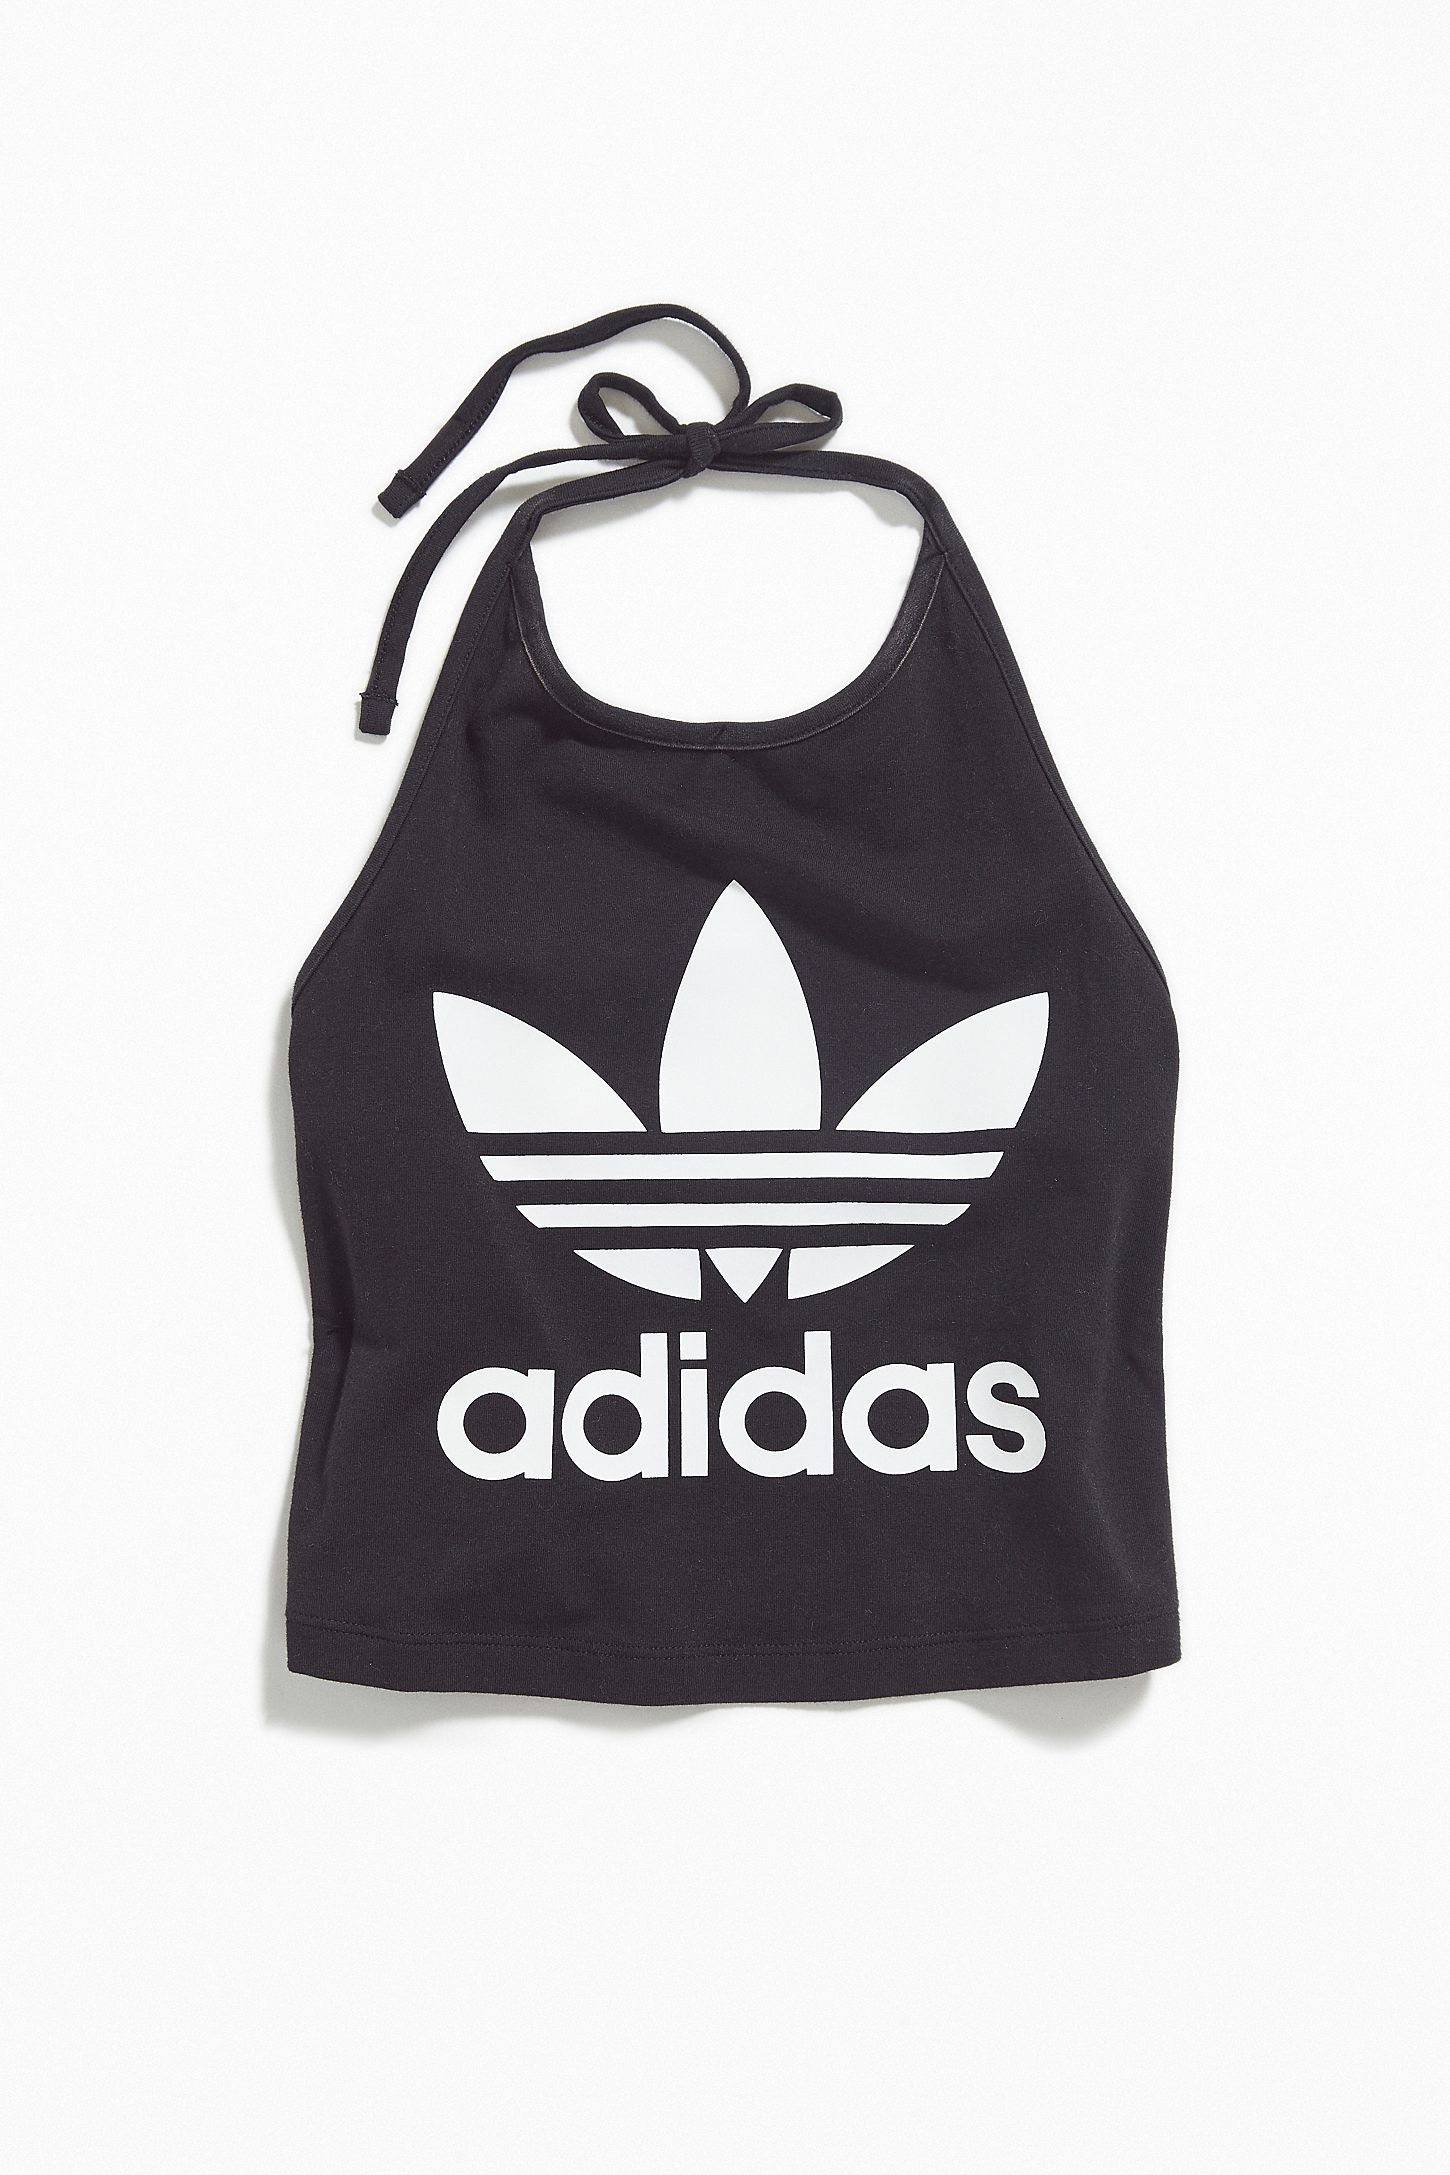 a4d72320 adidas Trefoil Cropped Halter Tank Top   Urban Outfitters